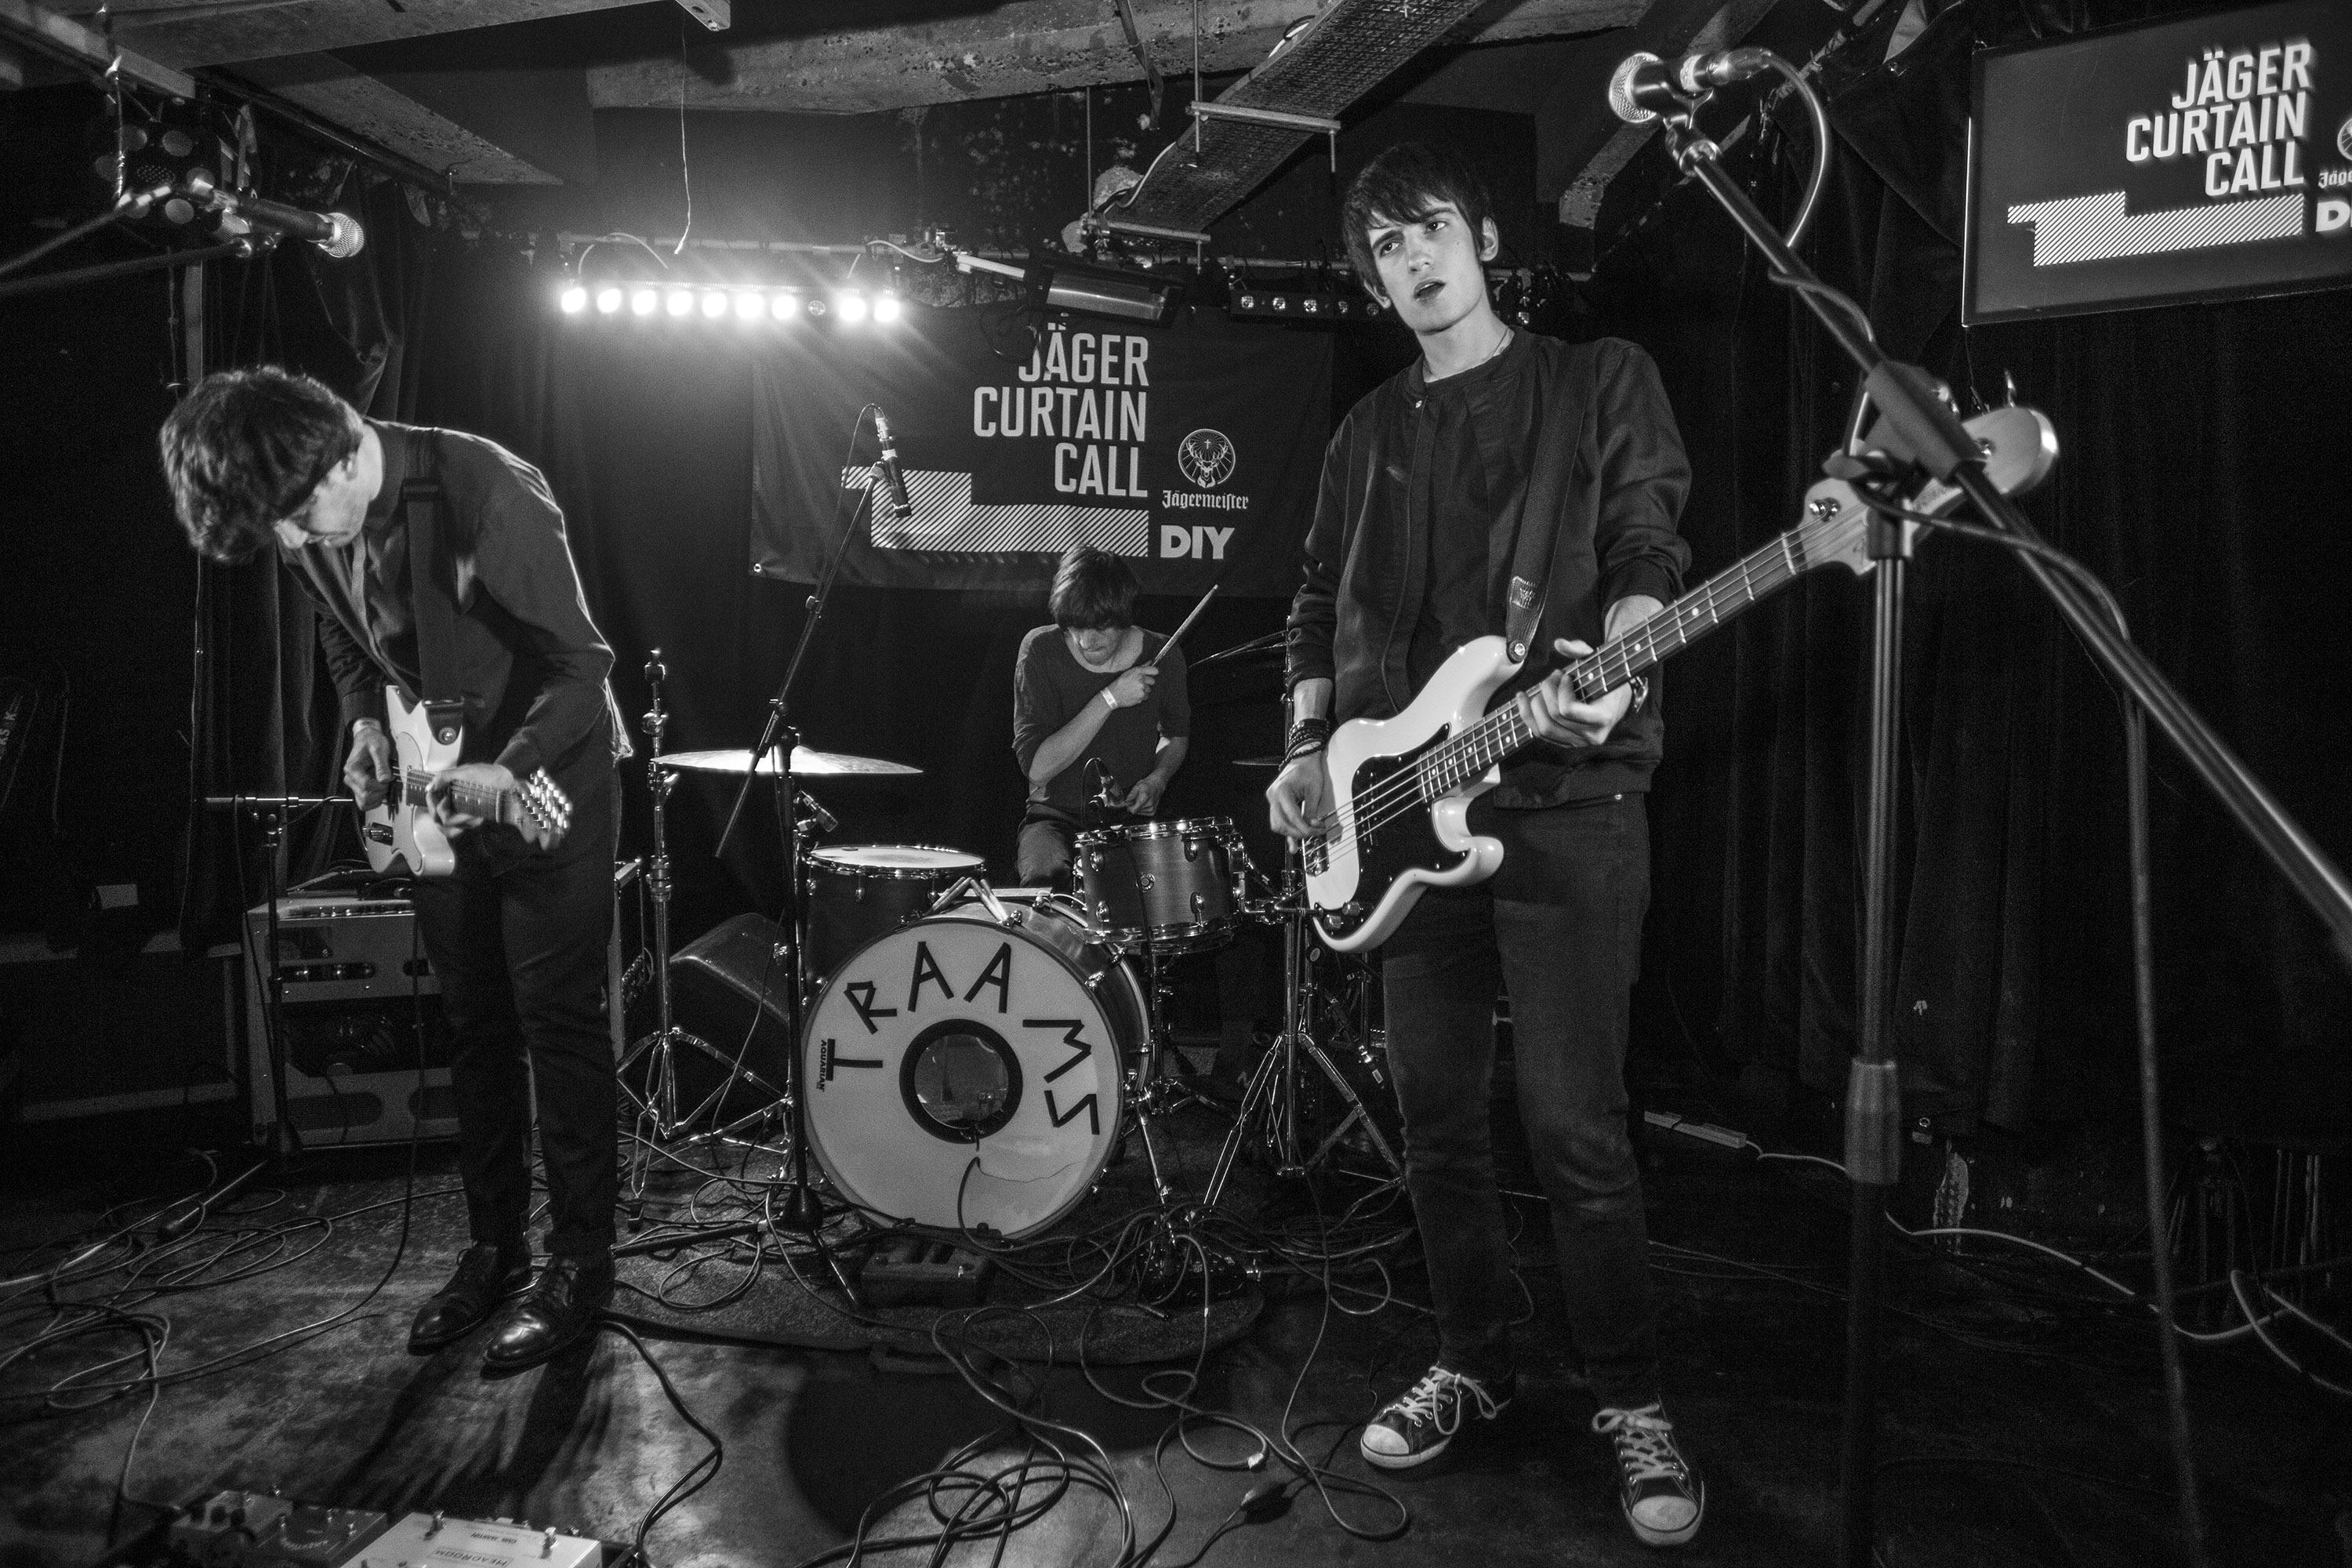 TRAAMS, Husky Loops and YOWL bring grit and guts to Jäger Curtain Call